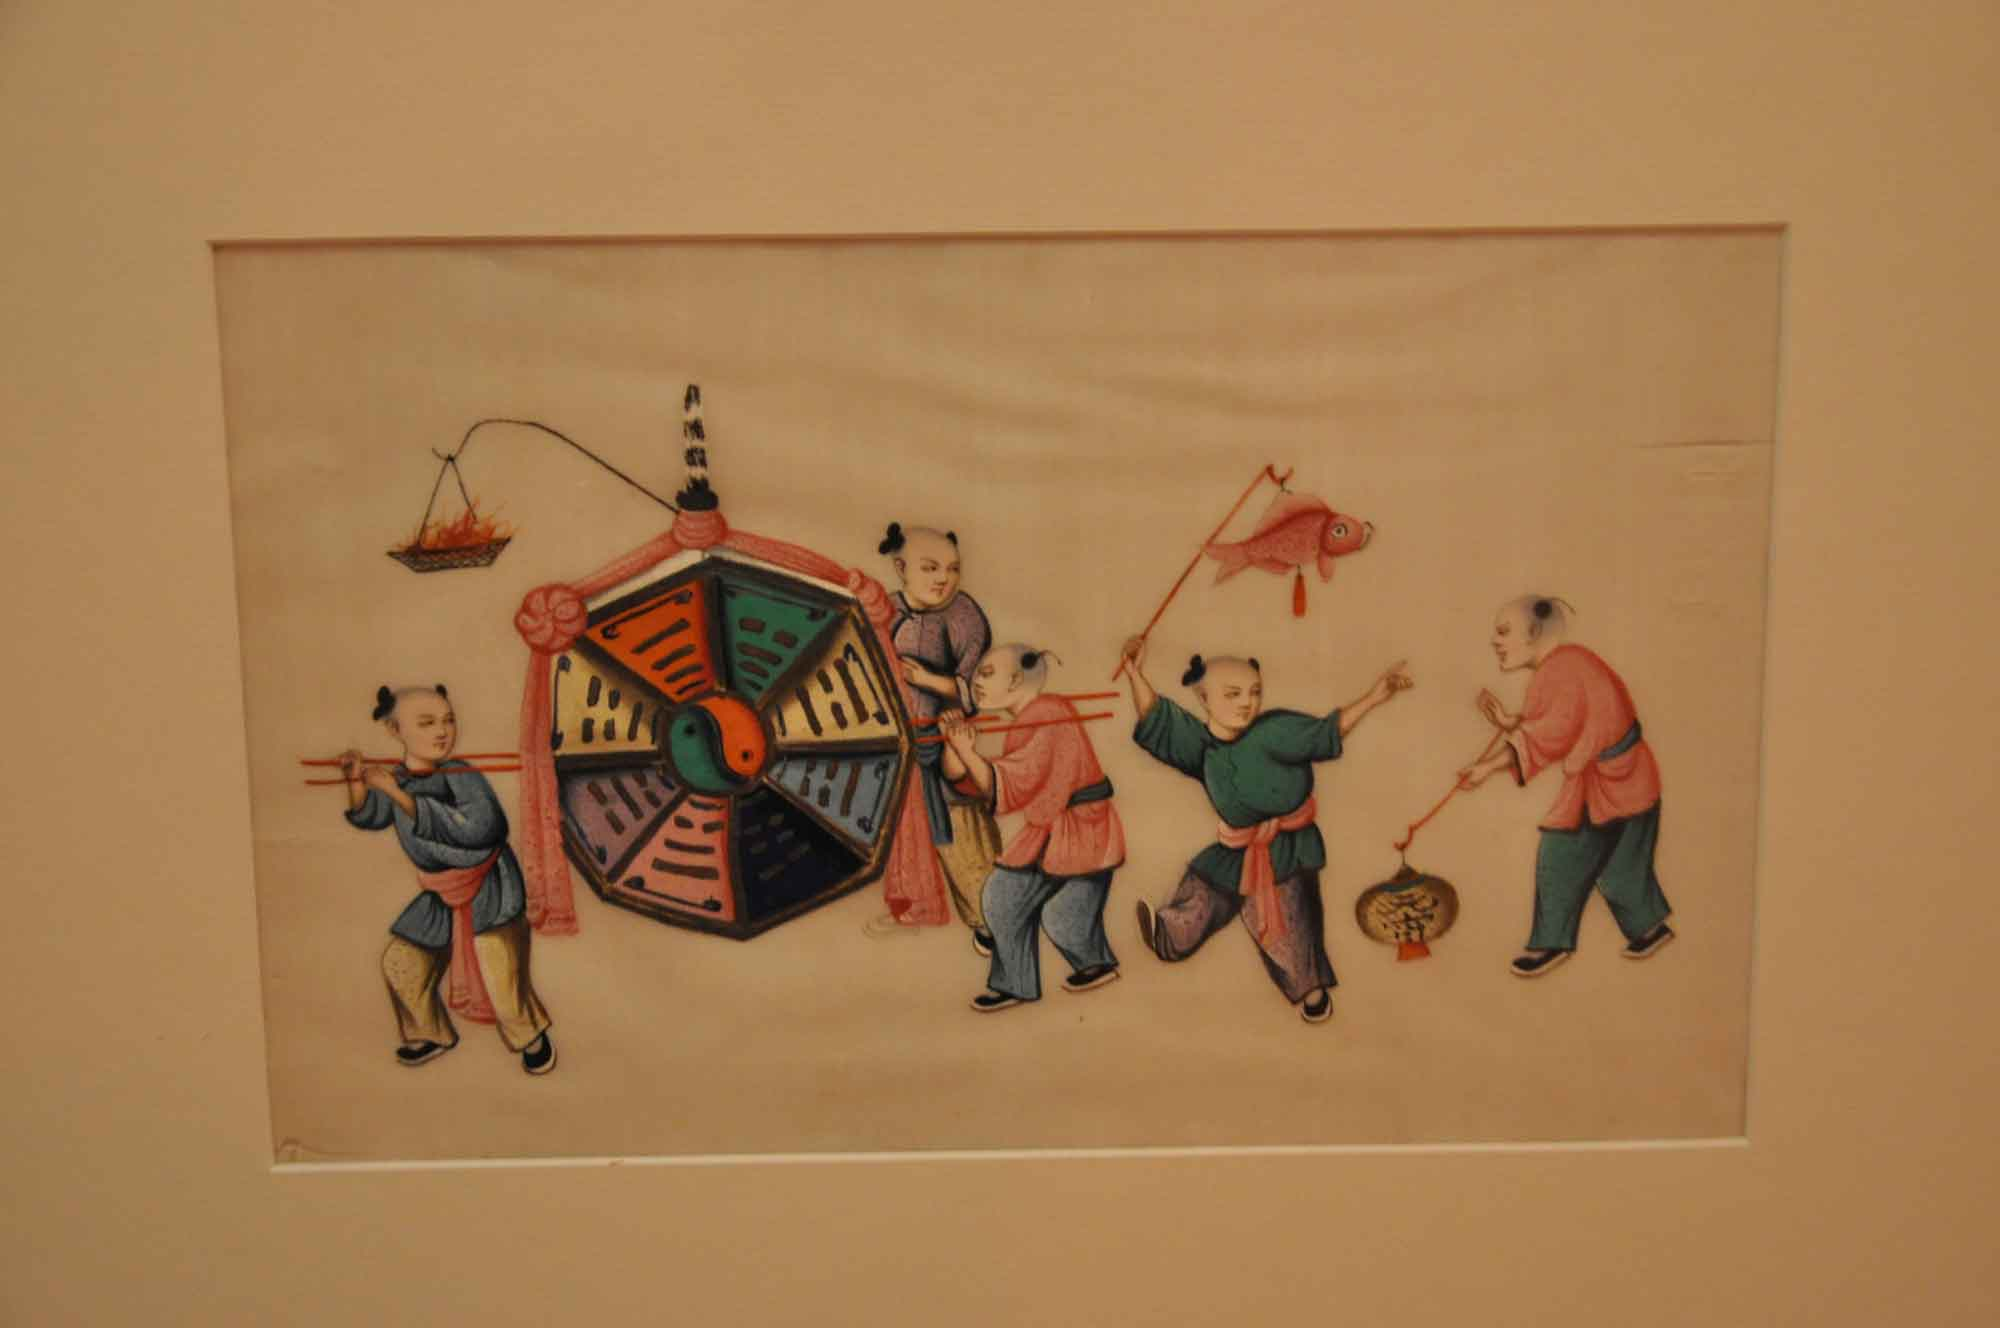 Macau Museum of Art: Fish vendors